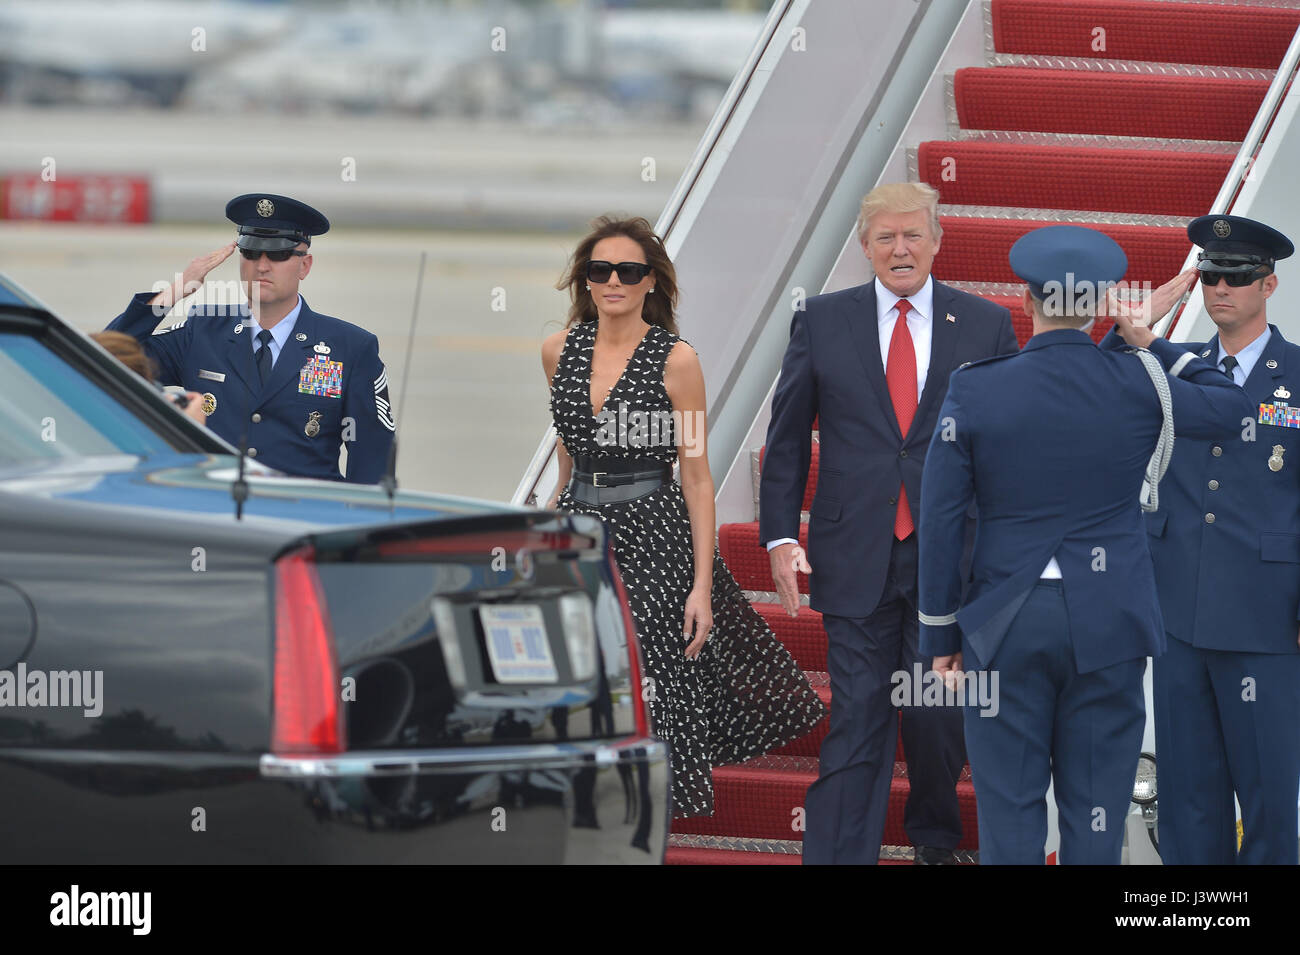 U.S. President Donald J. Trump and First Lady Melania Trump arrive on Air Force One at Palm Beach International - Stock Image